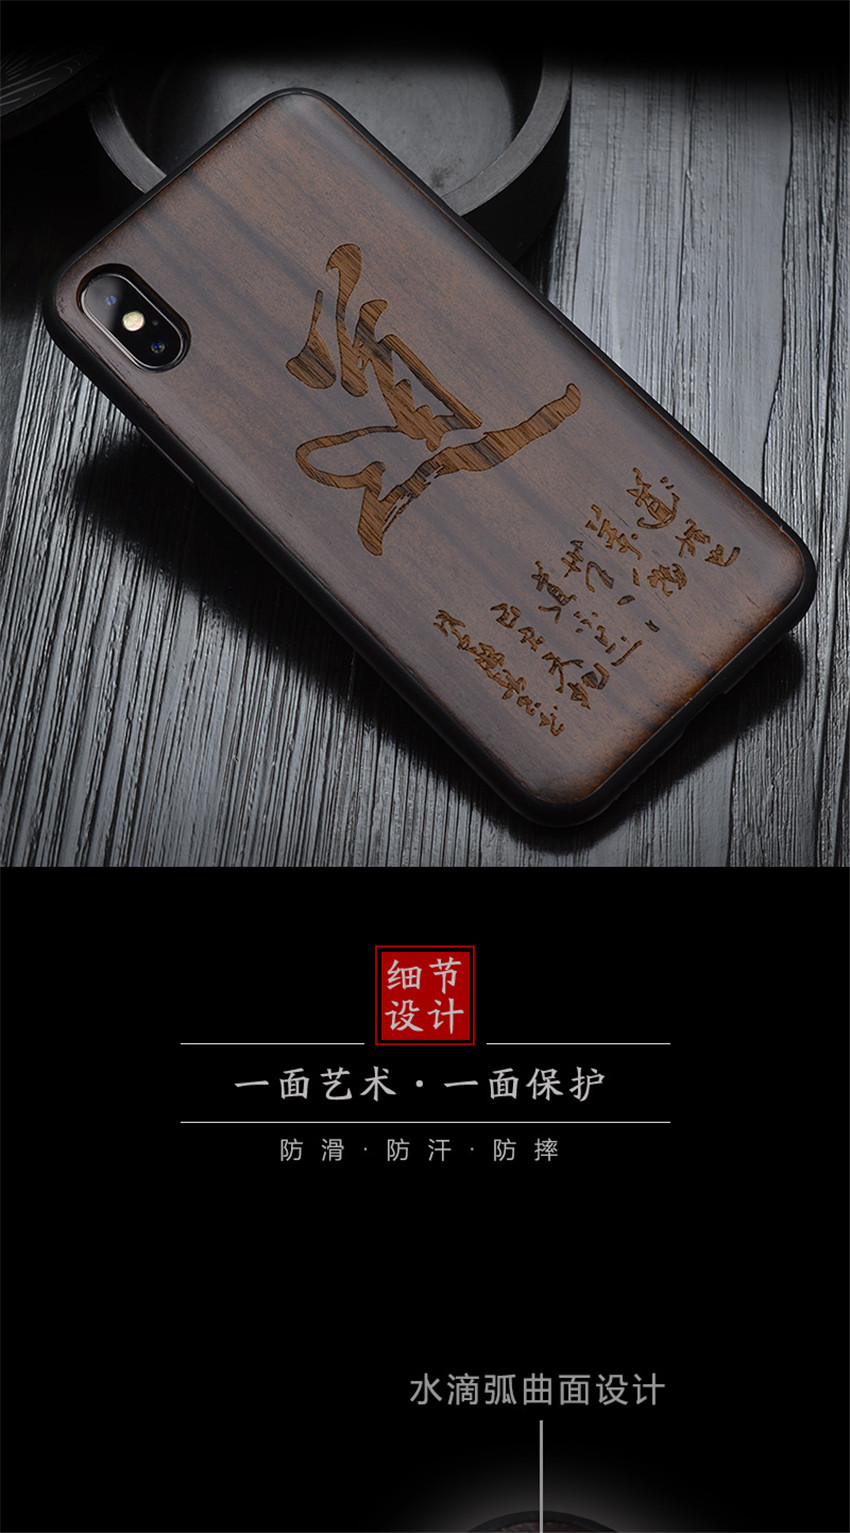 2018 New For iPhone XS Max Case Black Ebony Wood Cover For iPhone XS Carved TPU Bumper Wooden Case For iPhone X XR (3)